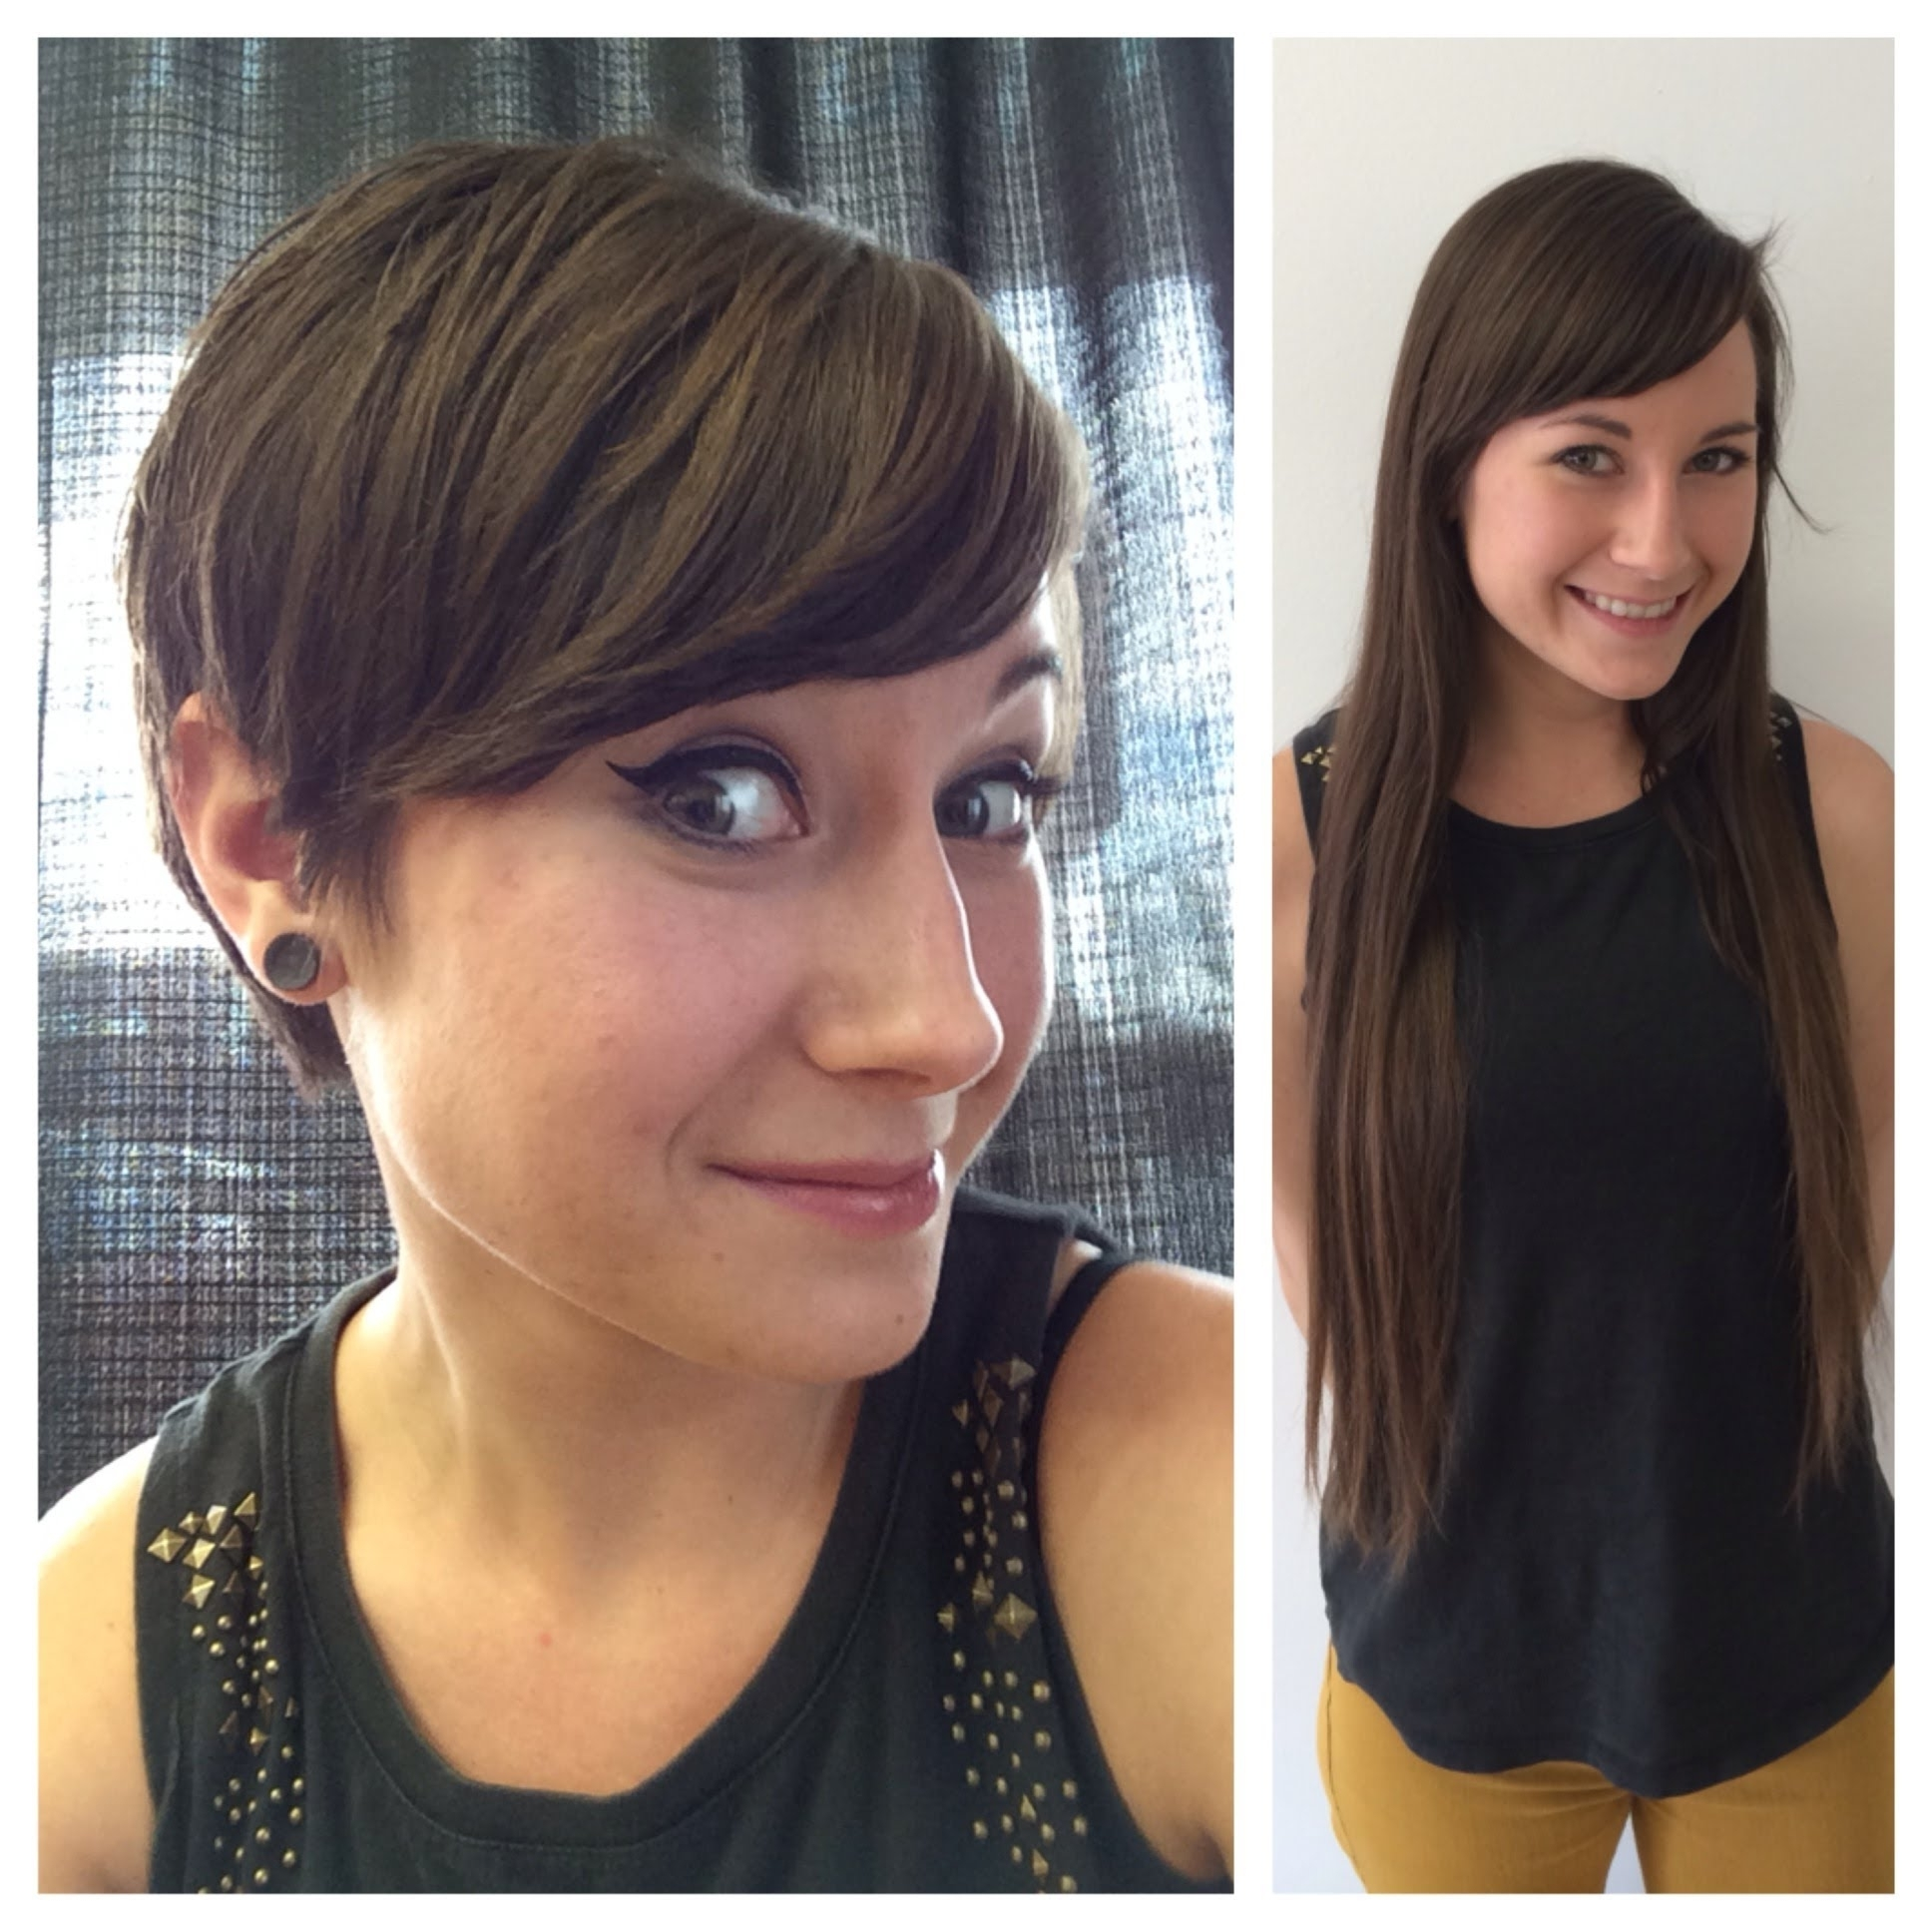 Haircut On Long Hair Brunette To A Pixie Hair Cut Anne Hathaway In Recent Brunette Pixie Hairstyles (View 2 of 15)